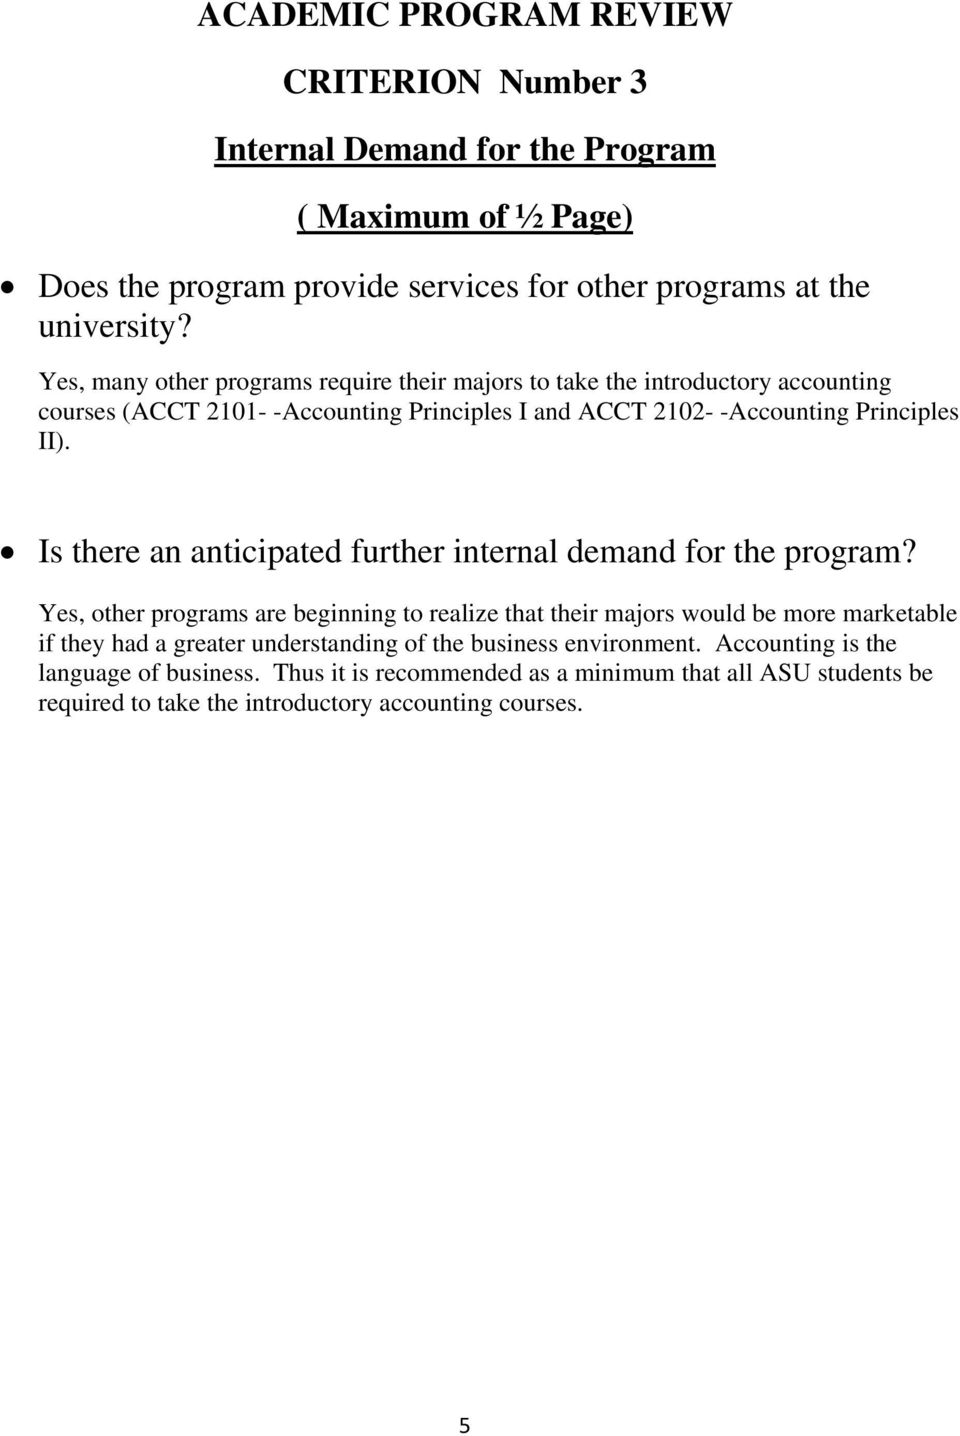 Is there an anticipated further internal demand for the program?